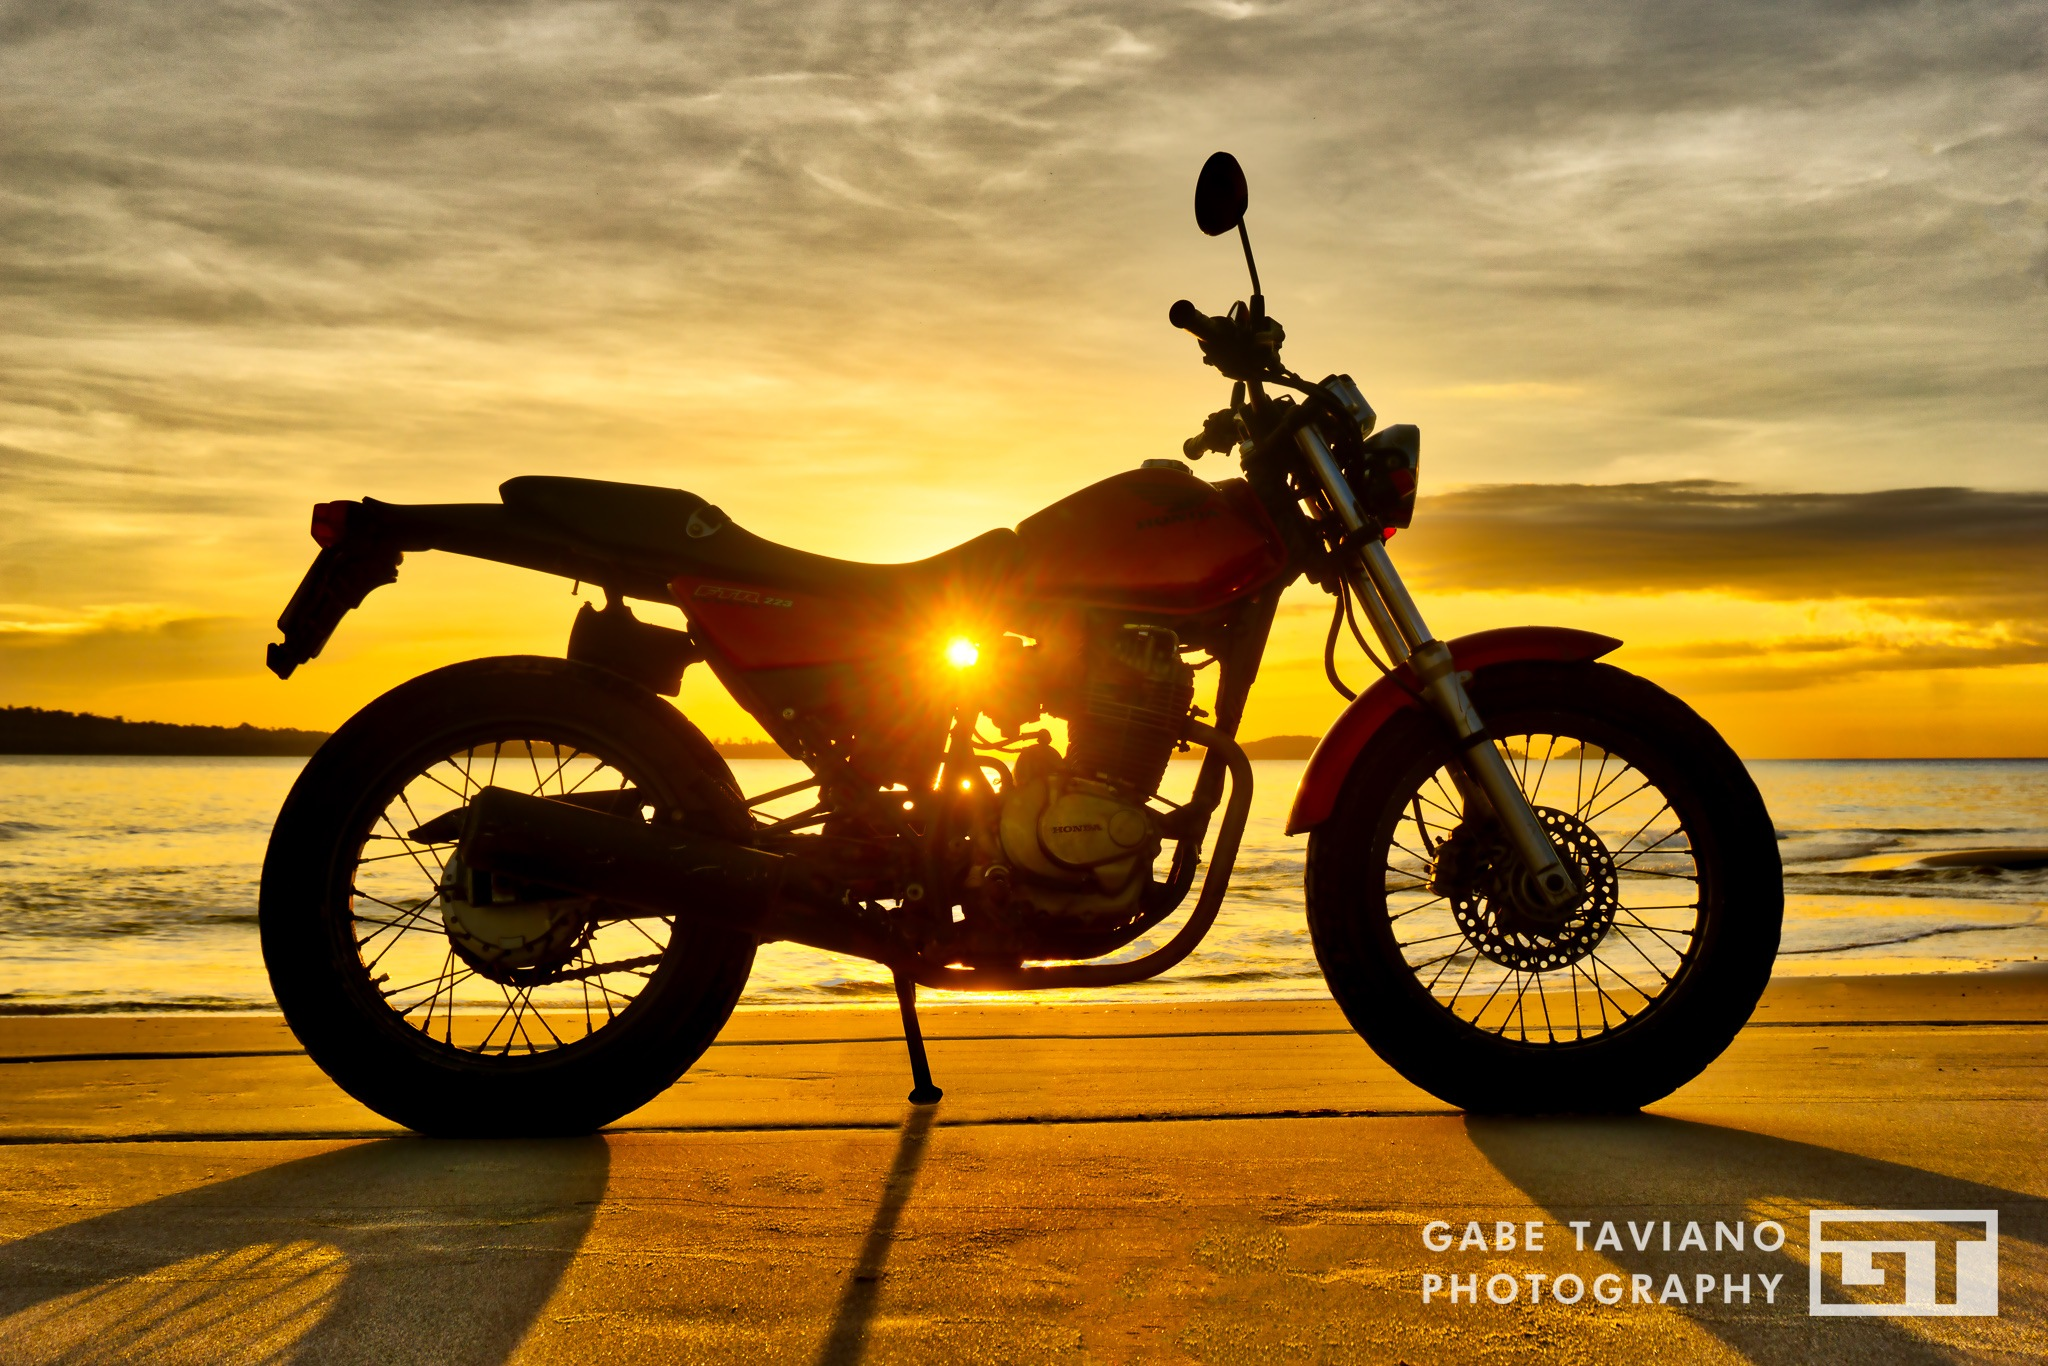 Motorcycle silhouette at sunset on the beach by Gabe Taviano